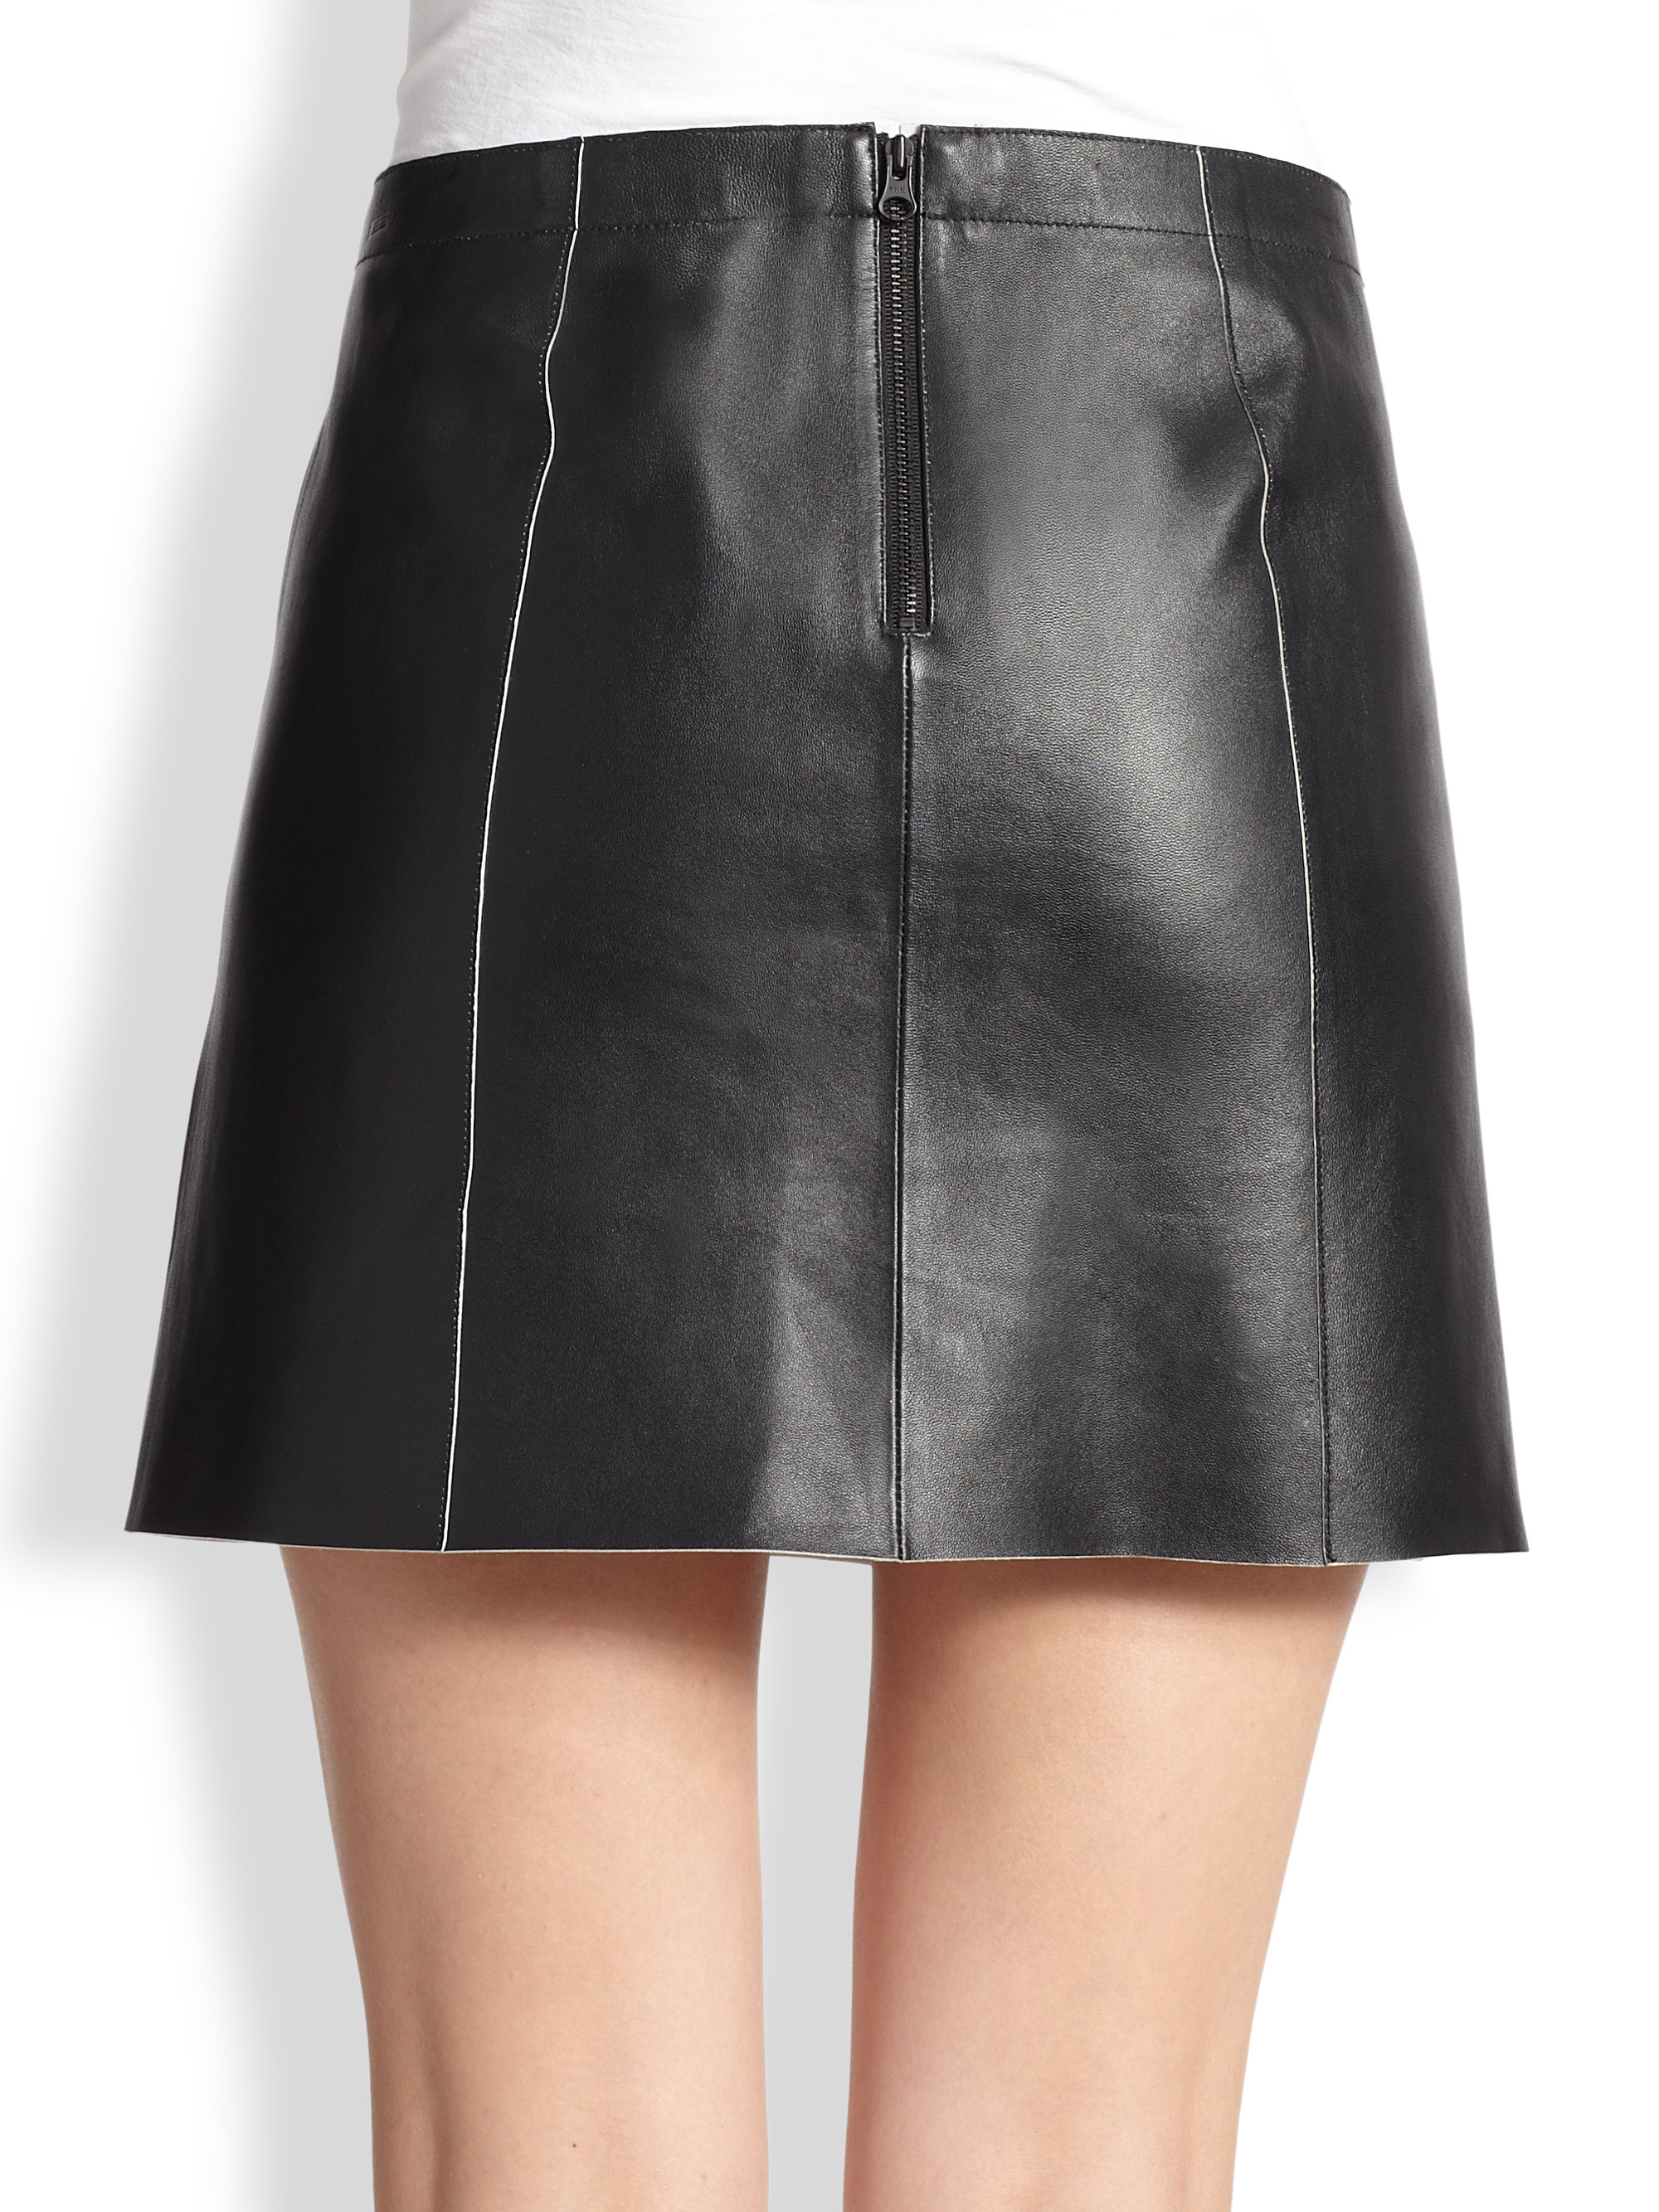 07d90f1e52 Vince Leather Mini Skirt in Black - Lyst